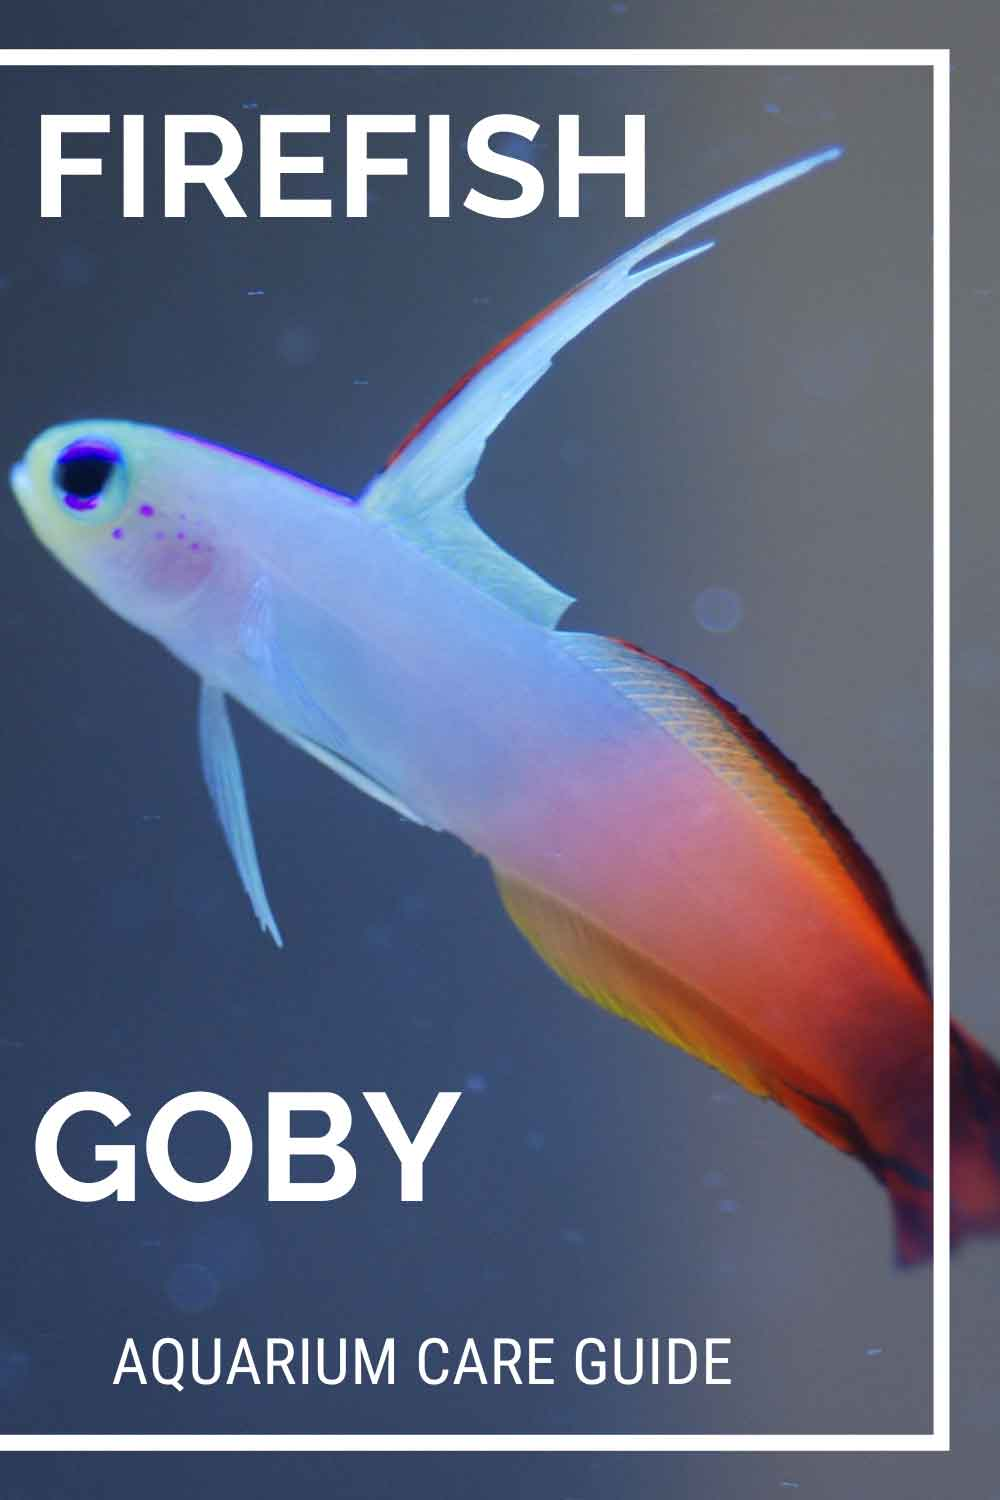 Firefish goby care guide